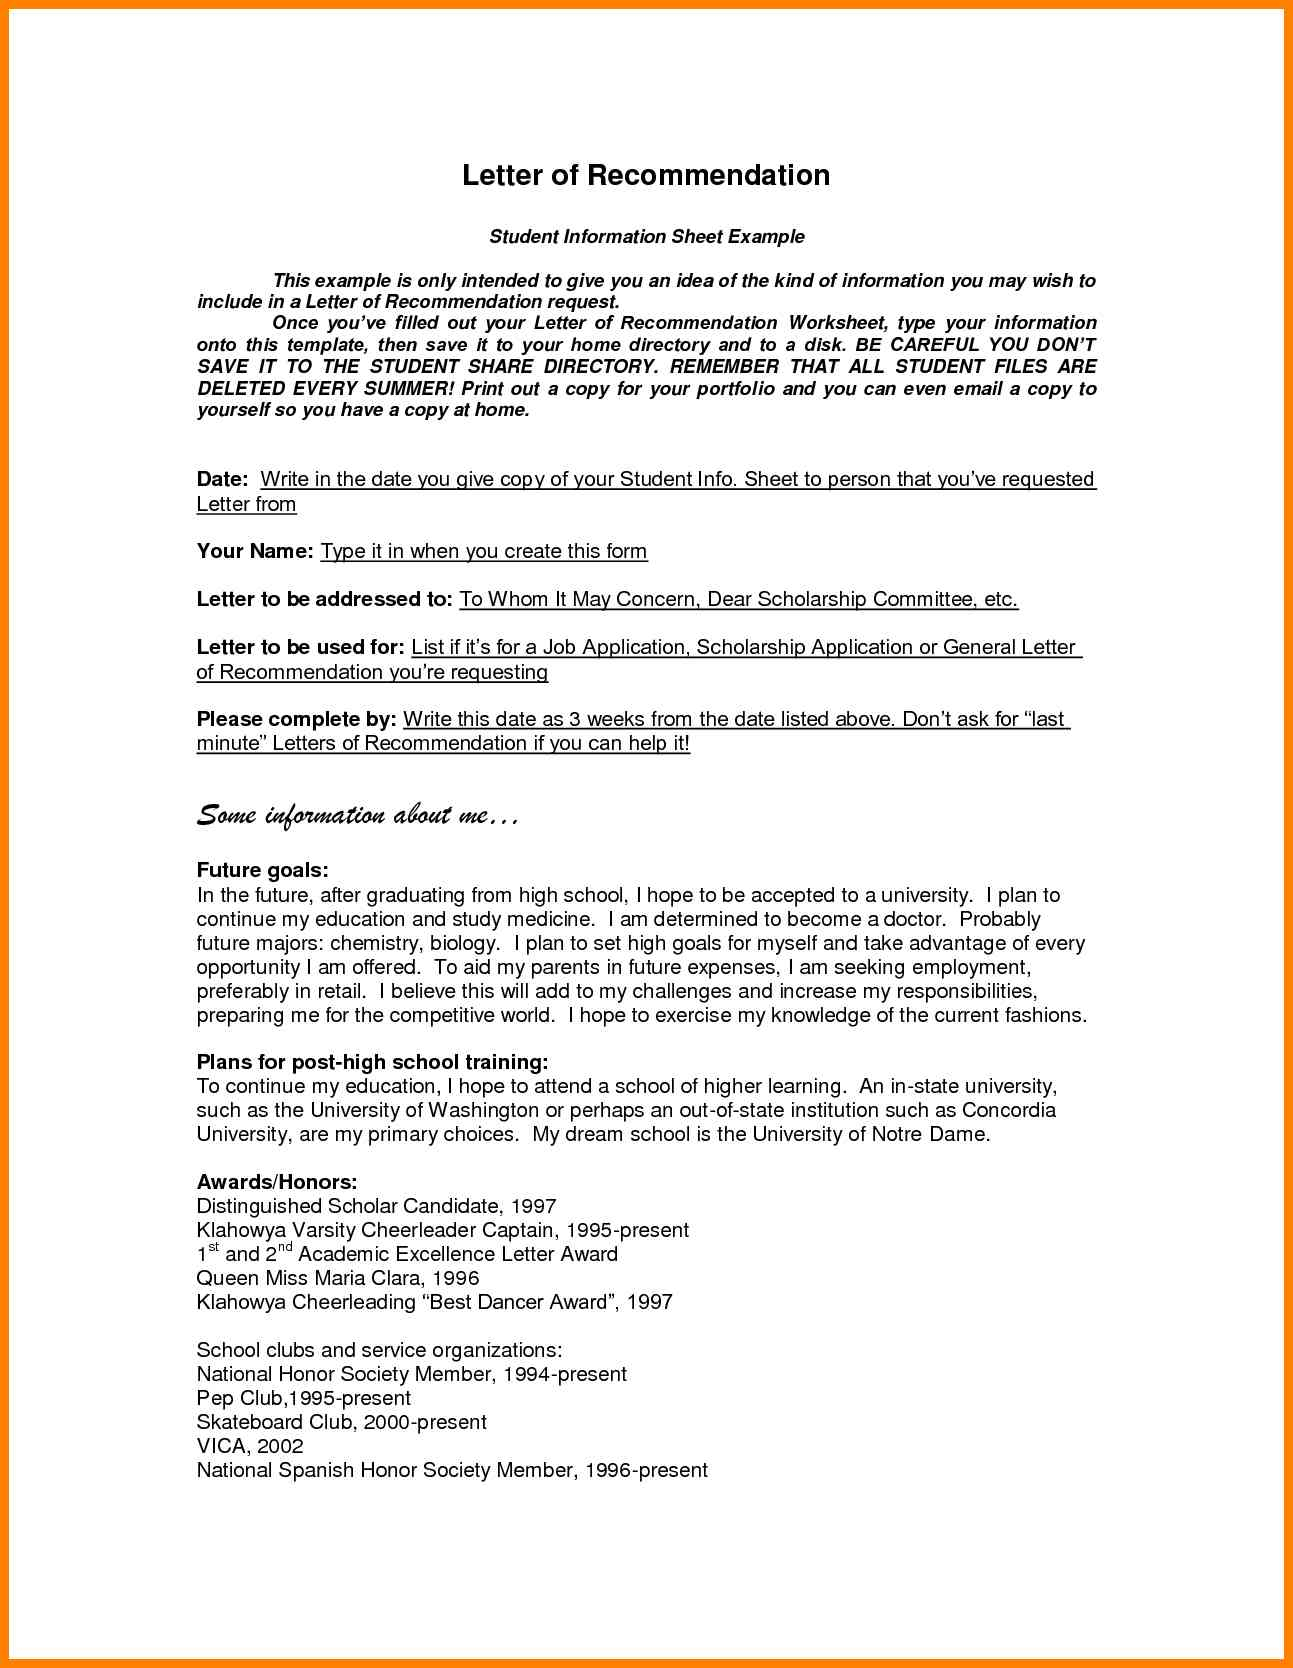 Sample Letter Of Recommendation Template - Inspirational Letter Re Mendation Template for Employee